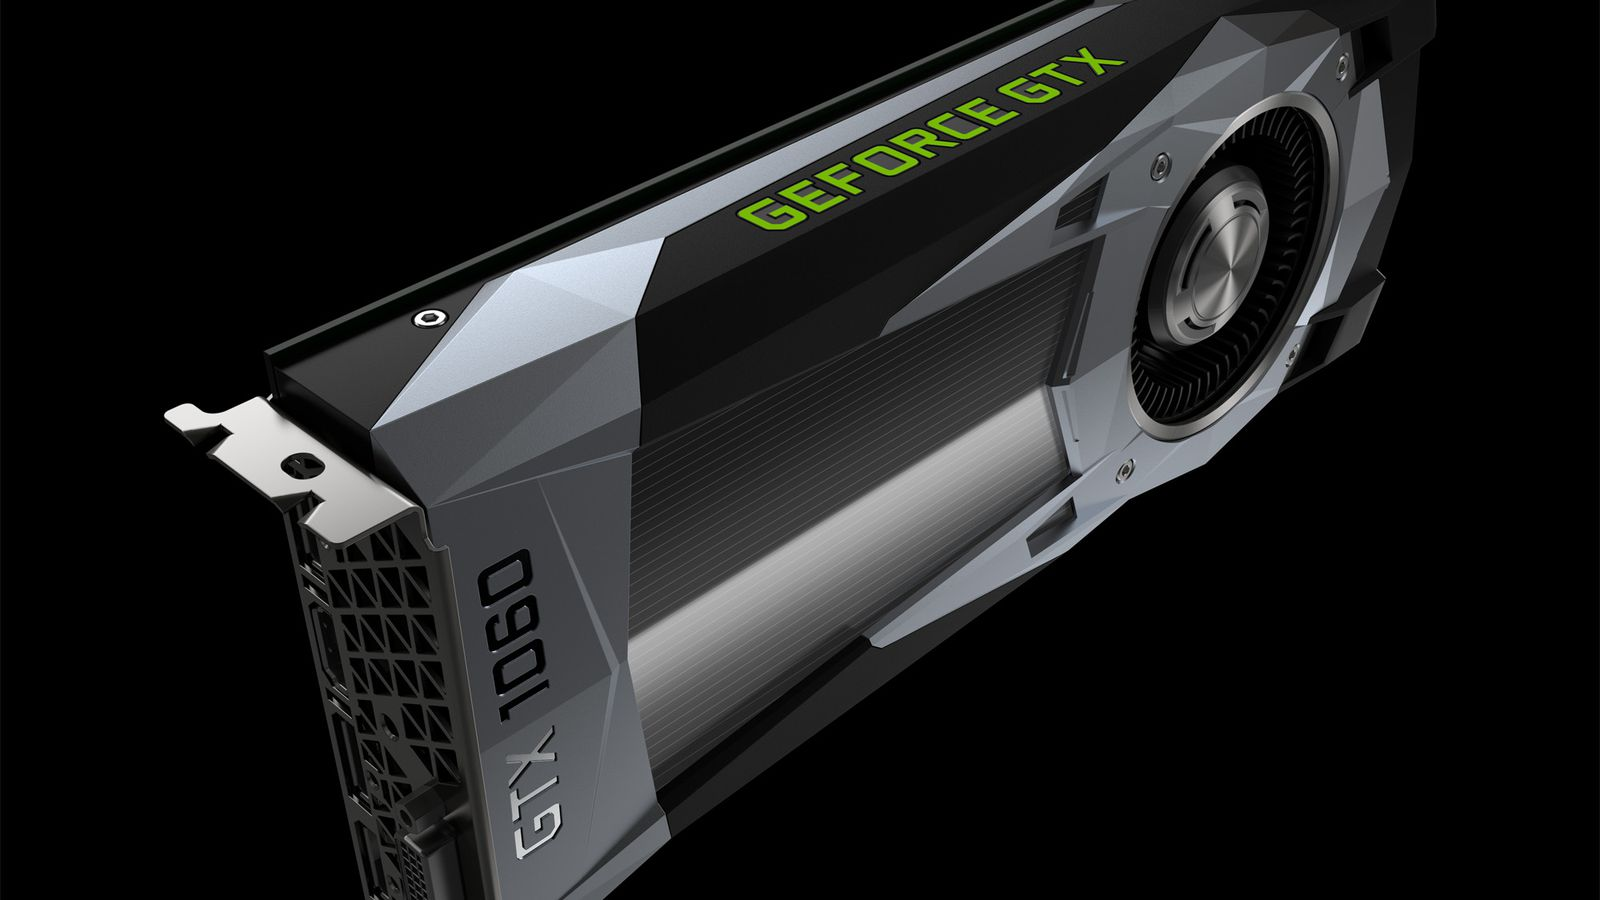 GeForce GTX 1060 Not Bad For A Low End Card